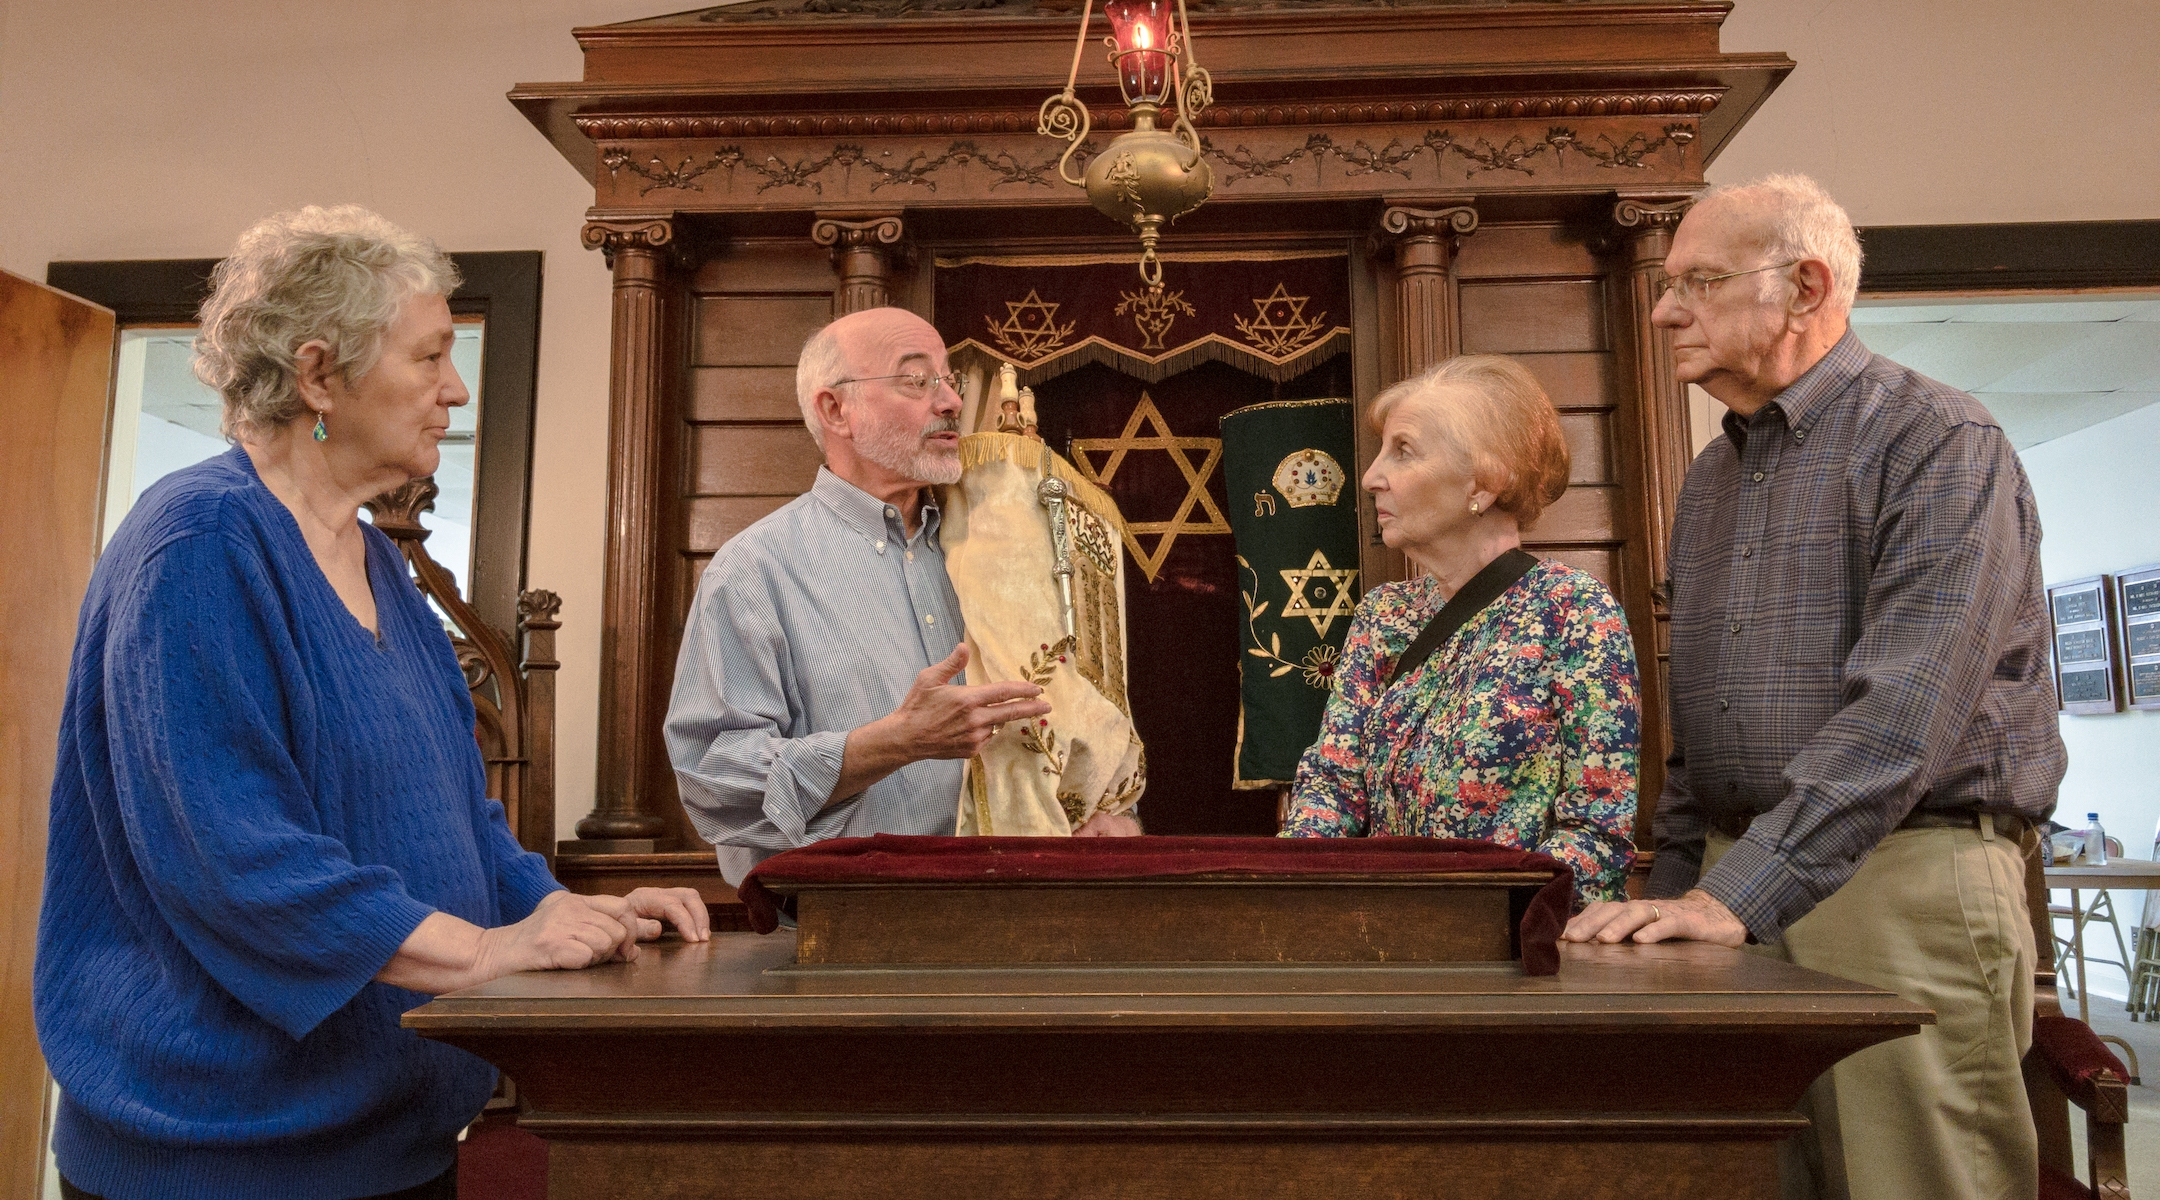 The four members of Temple Mishkan Israel -- Hanna Berger, Ronnie Leet, Joanie Gibian Looney and Charles Pollack --standing in front of the Torah Ark. The synagogue has not held weekly services for decades. (Amy Milligan)